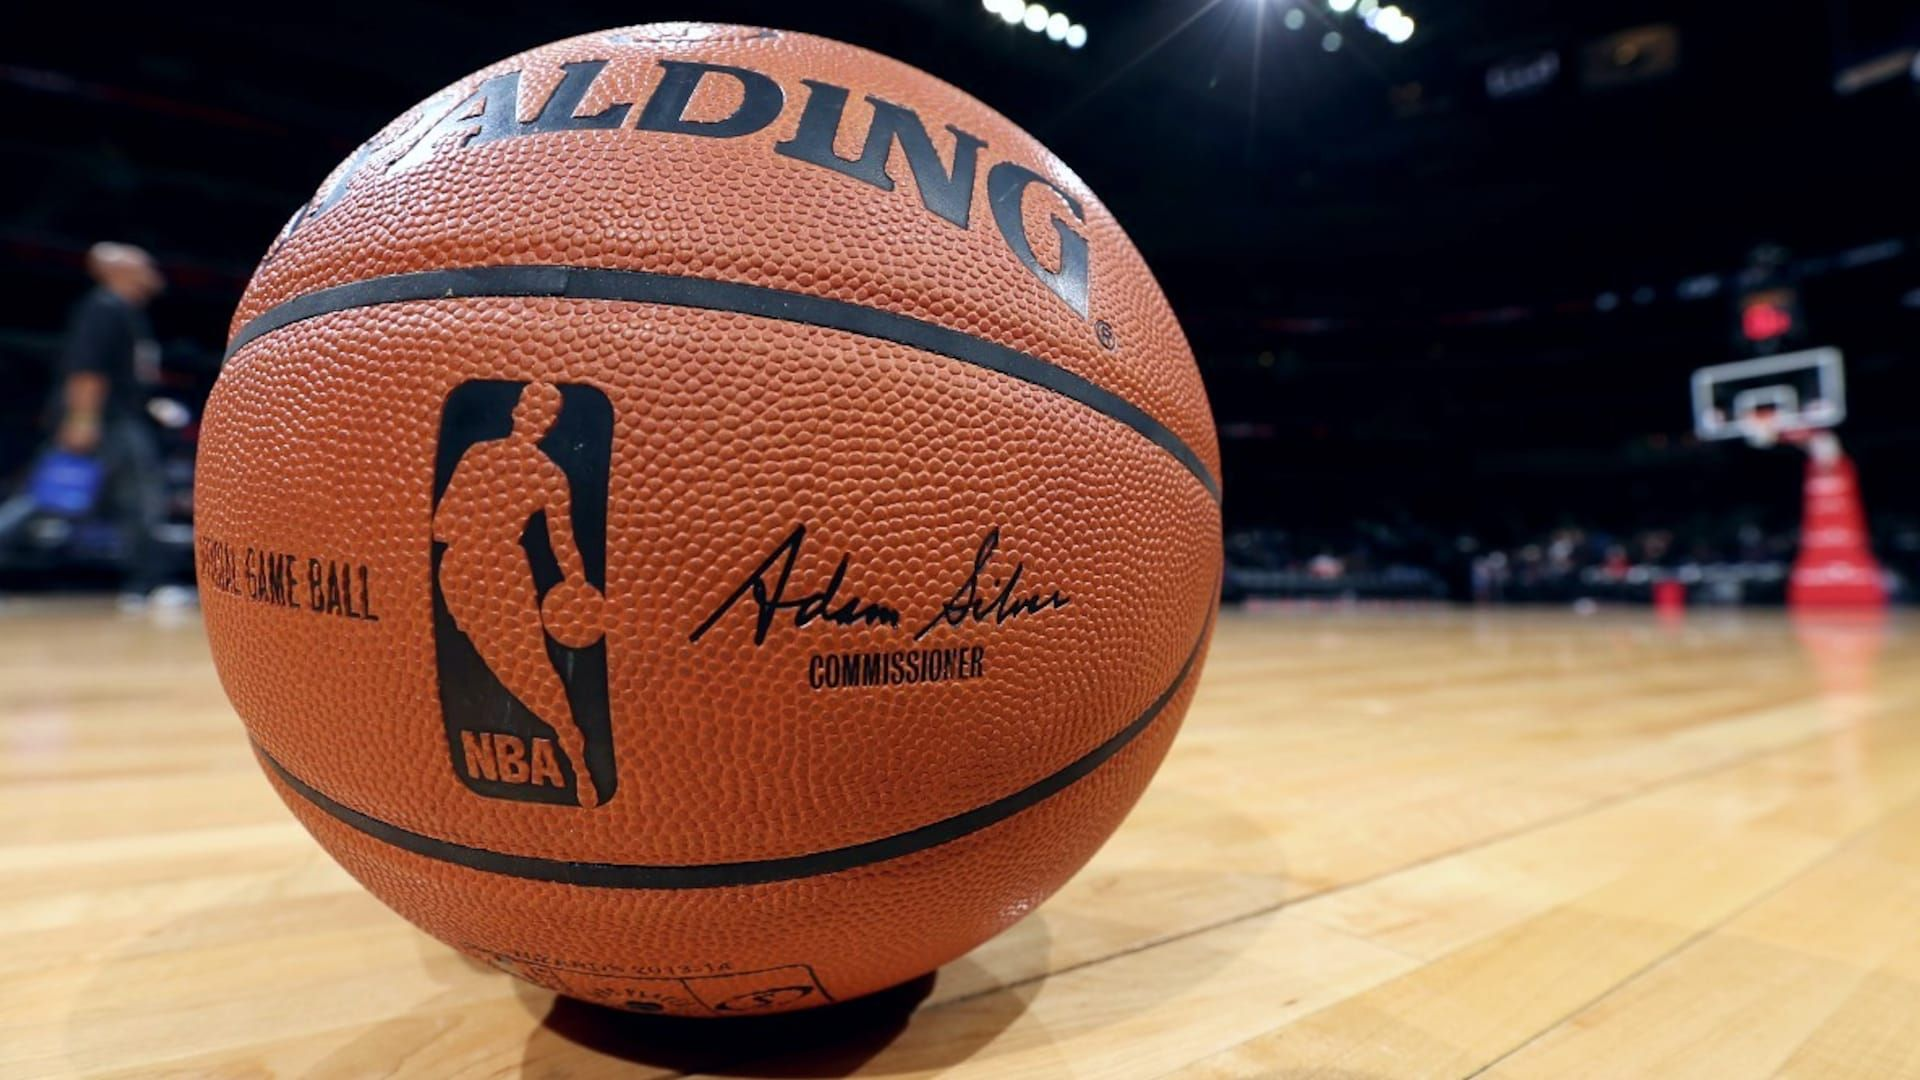 The NBA return seems set for July 31st at Disney's Wide